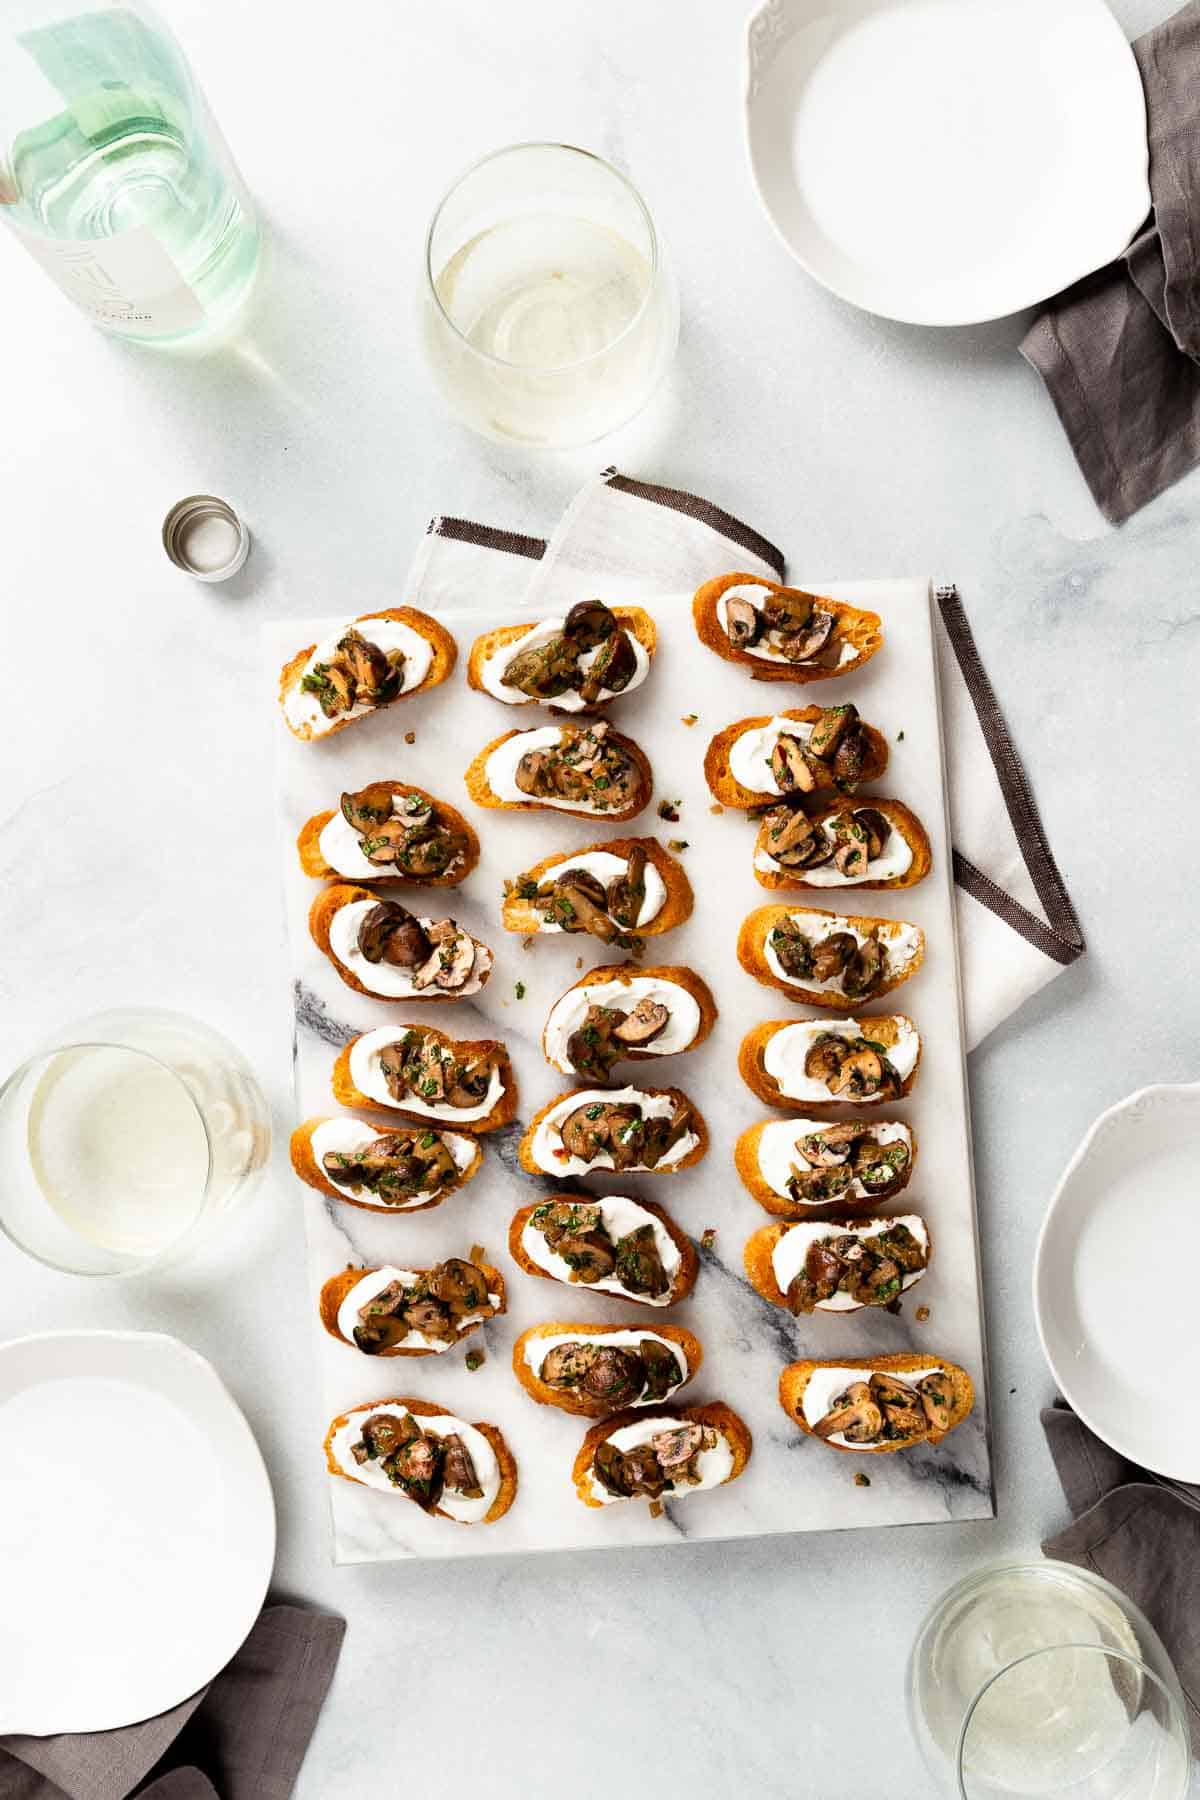 Large white marble slab holding crostini's with mushrooms on top